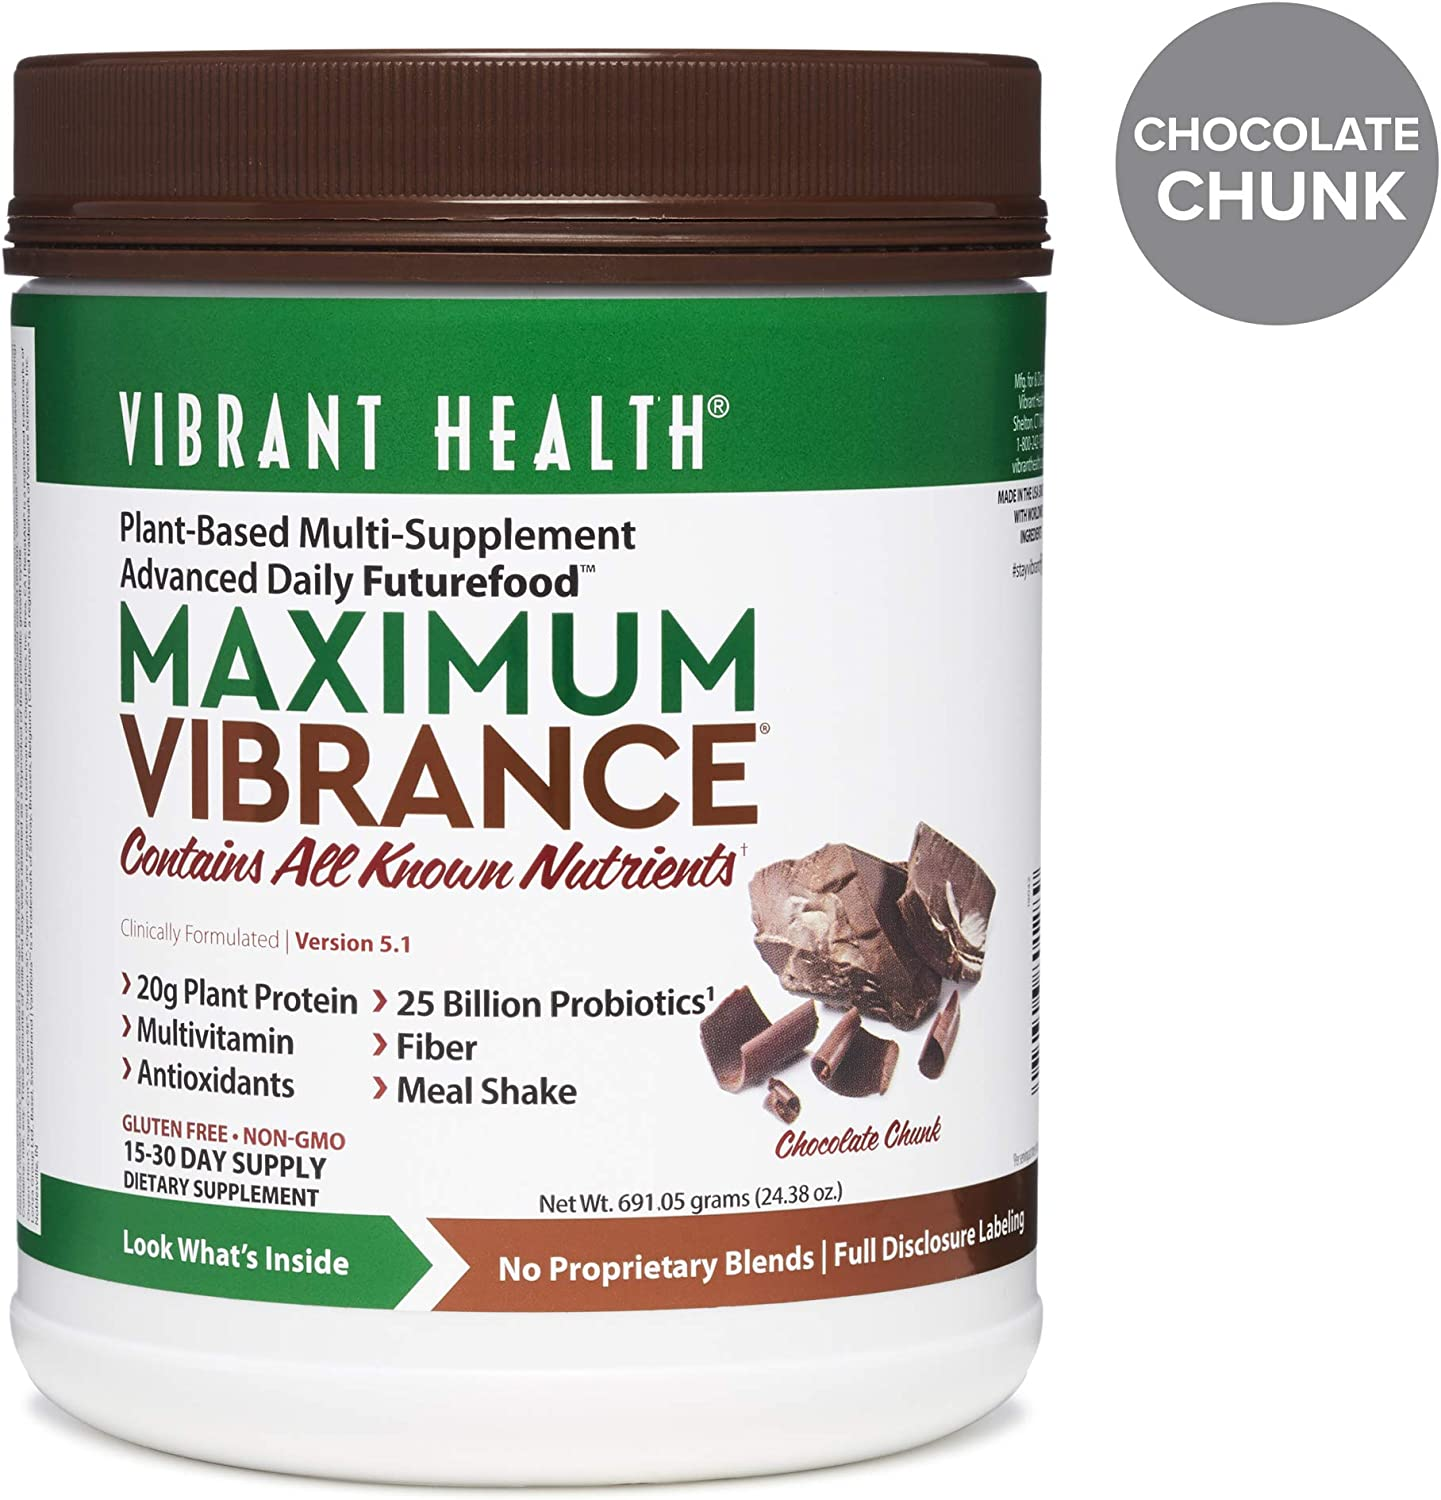 Vibrant Health – Maximum Vibrance, Plant-Based Meal Replacement Rich with Vitamins, Minerals, Antioxidants, and Protein, Gluten Free, Vegetarian, Non-GMO, Chocolate Chunk, 15 Servings